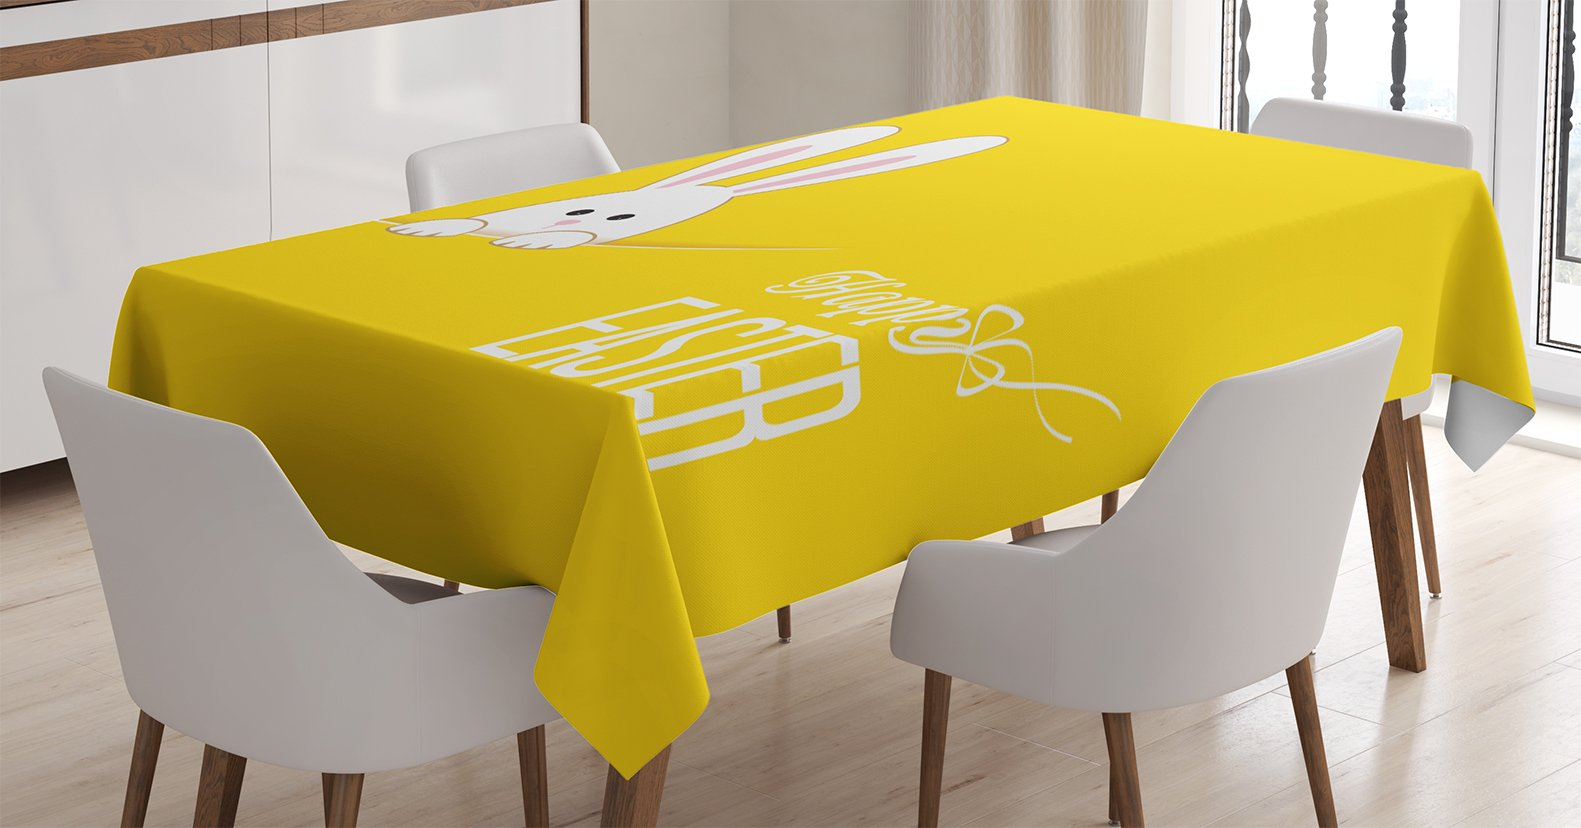 Ambesonne Yellow Decor Tablecloth, Easter Bunny Rabbit Animal Cartoon Springtime Cheerful Fun Celebration Artwork Print, Dining Room Kitchen Rectangular Table Cover, 52 X 70 inches by Ambesonne